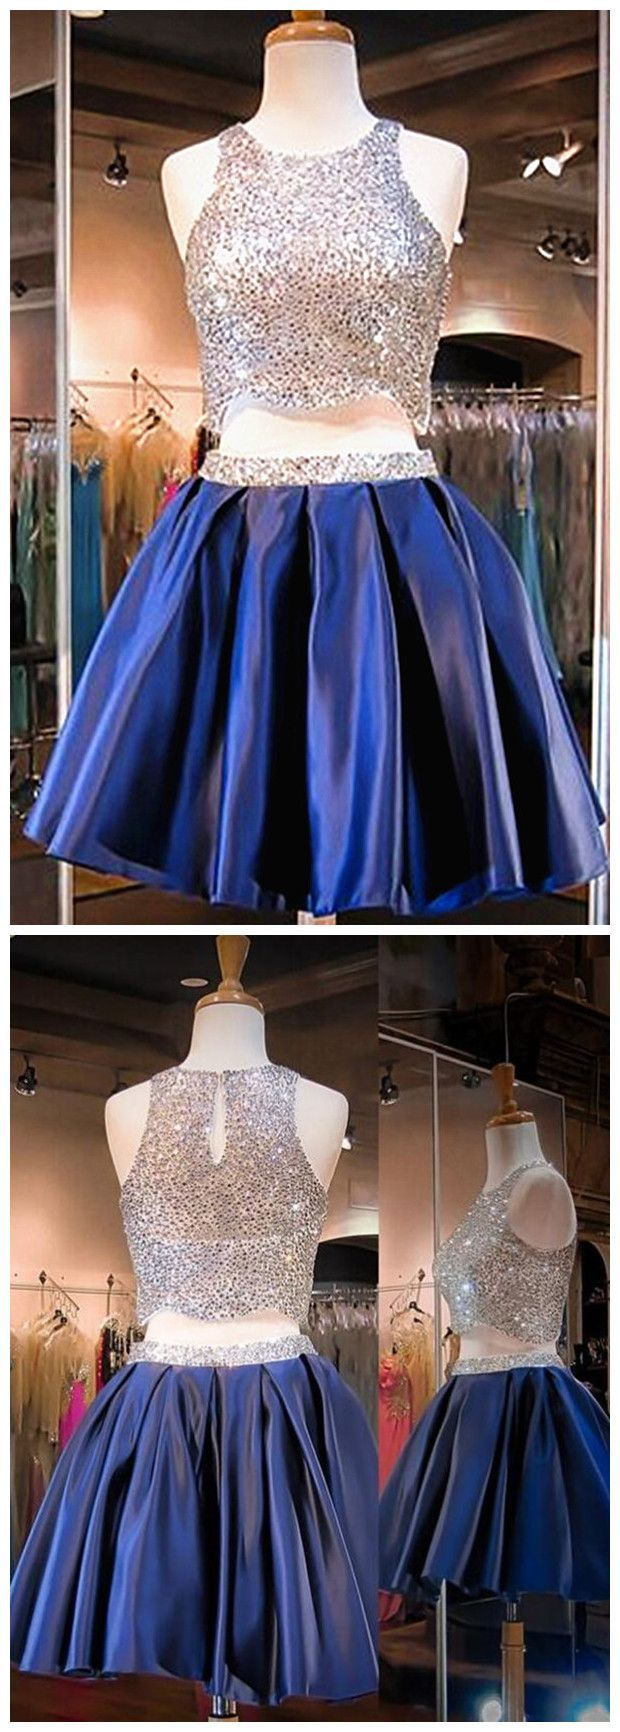 Two piece crew open back short navy blue satin homecoming dress with